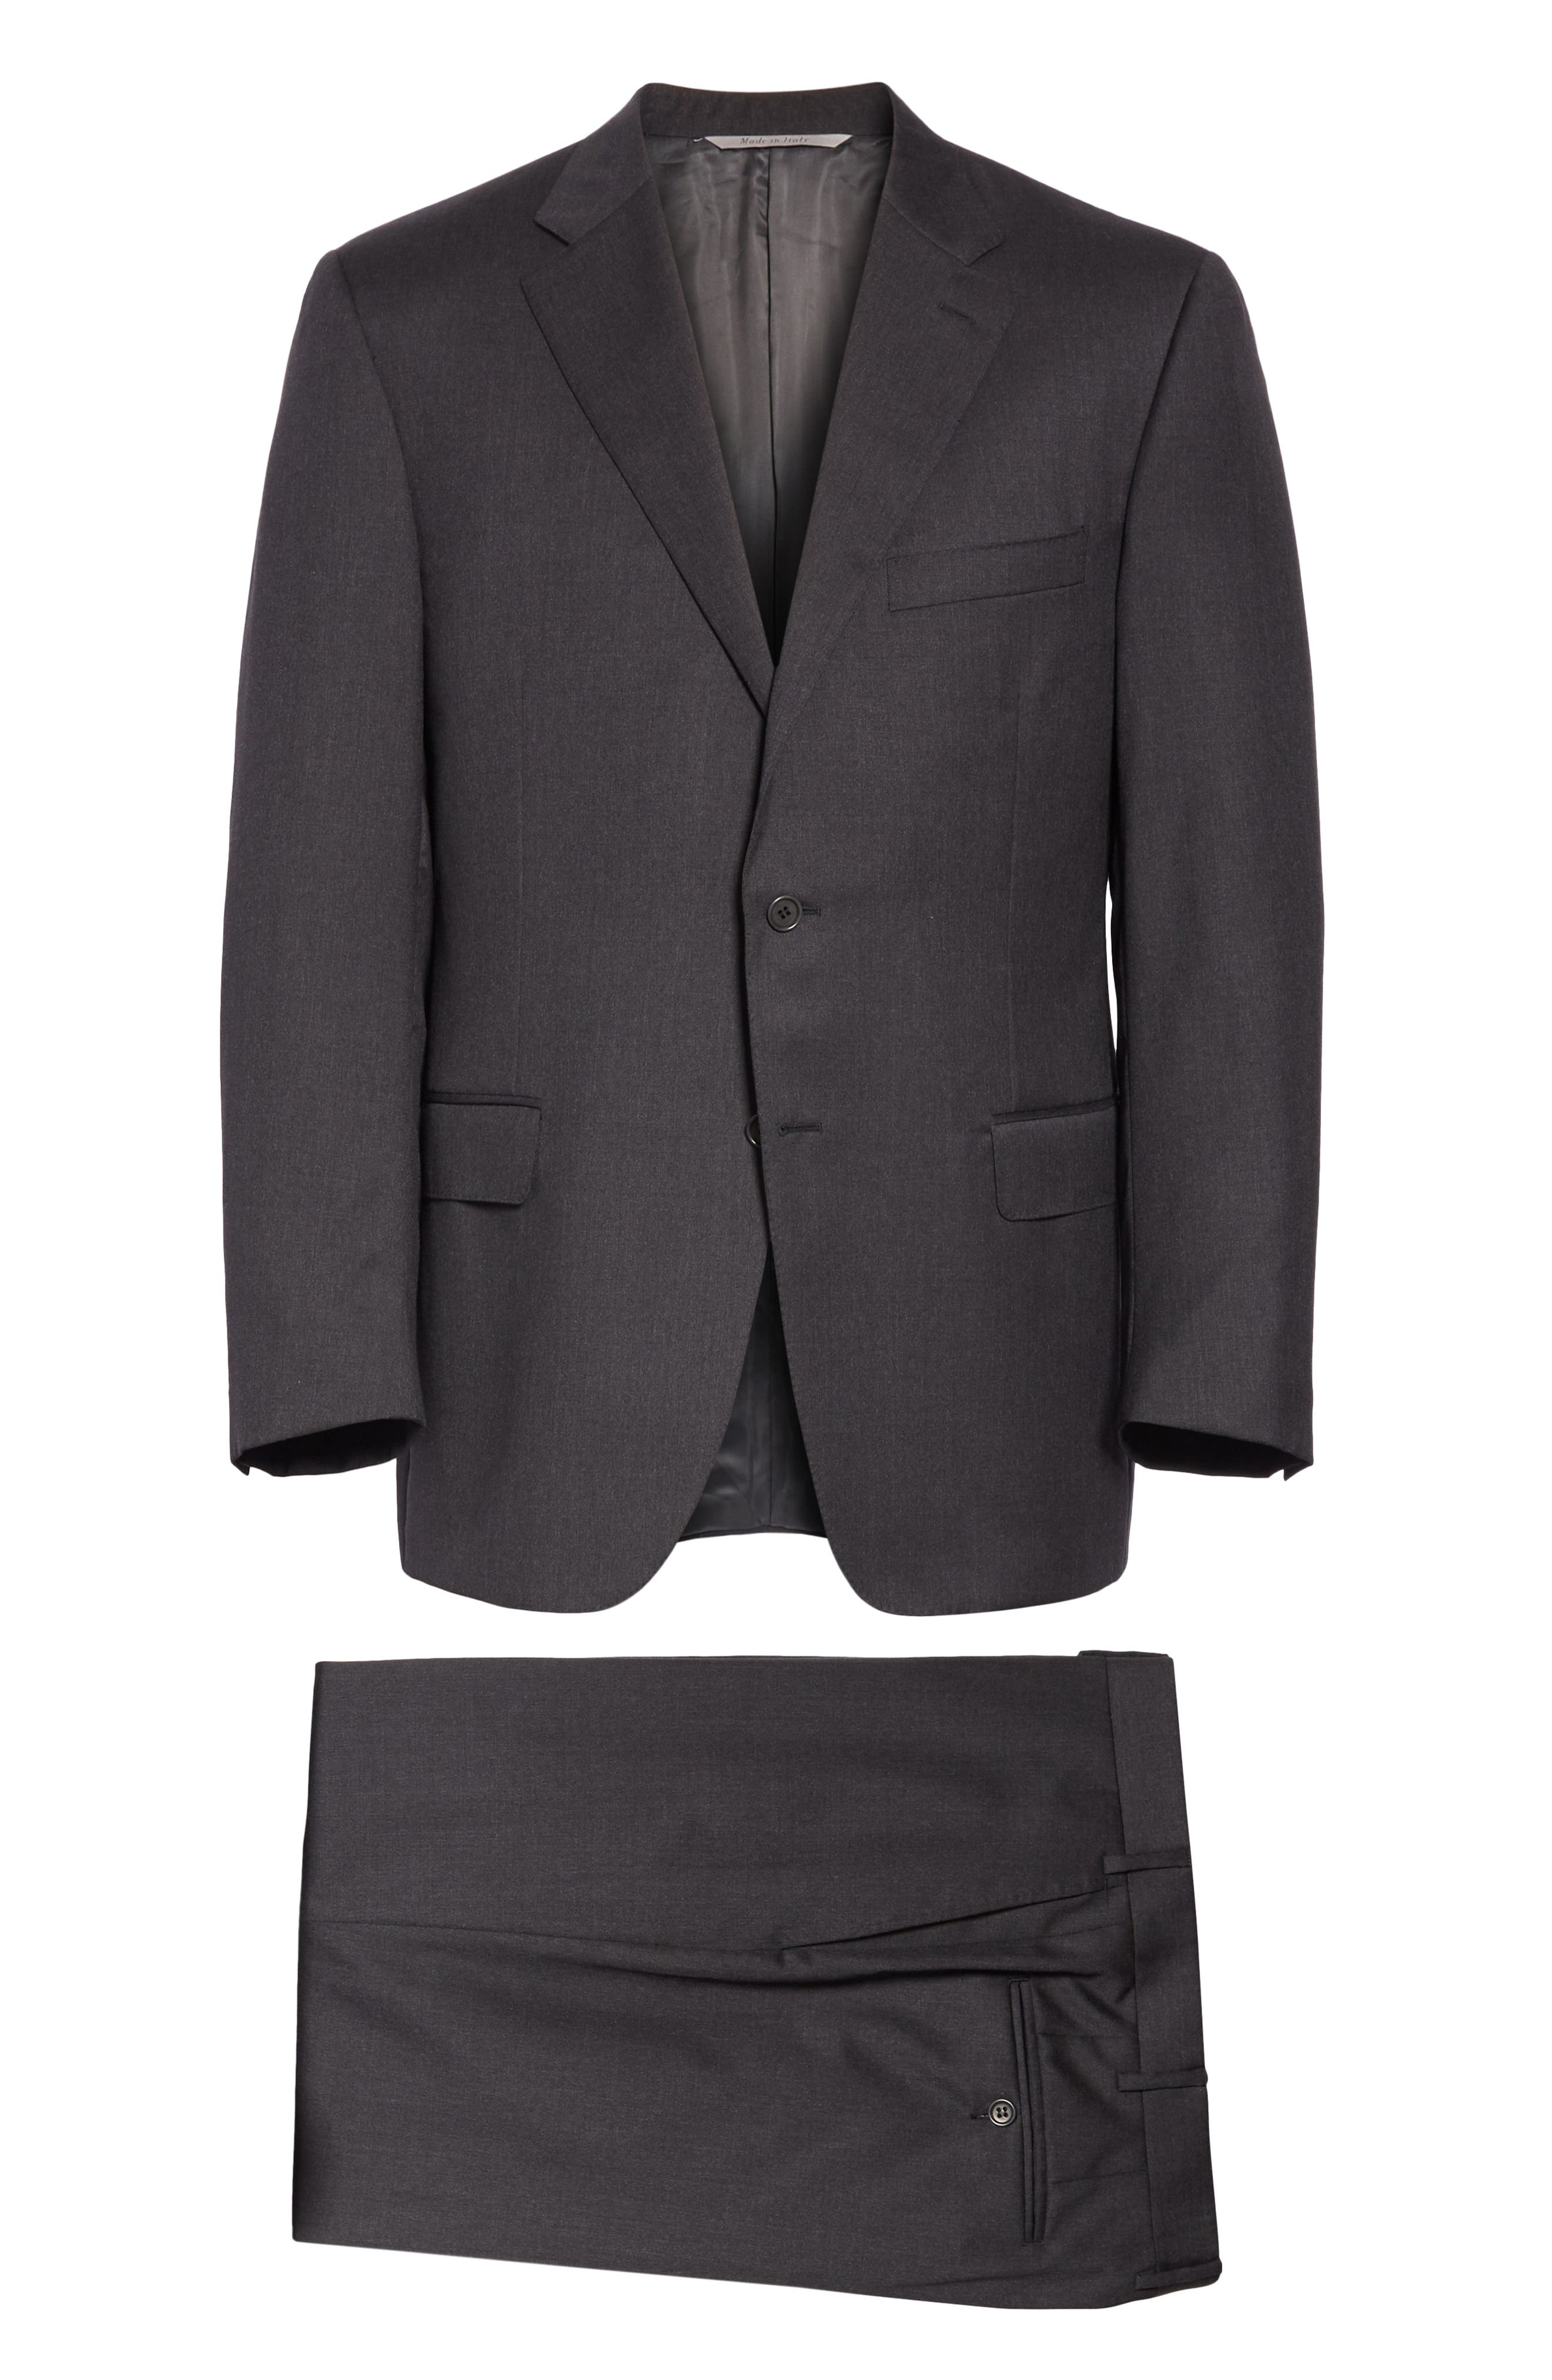 Classic Fit Wool Suit,                             Alternate thumbnail 8, color,                             CHARCOAL